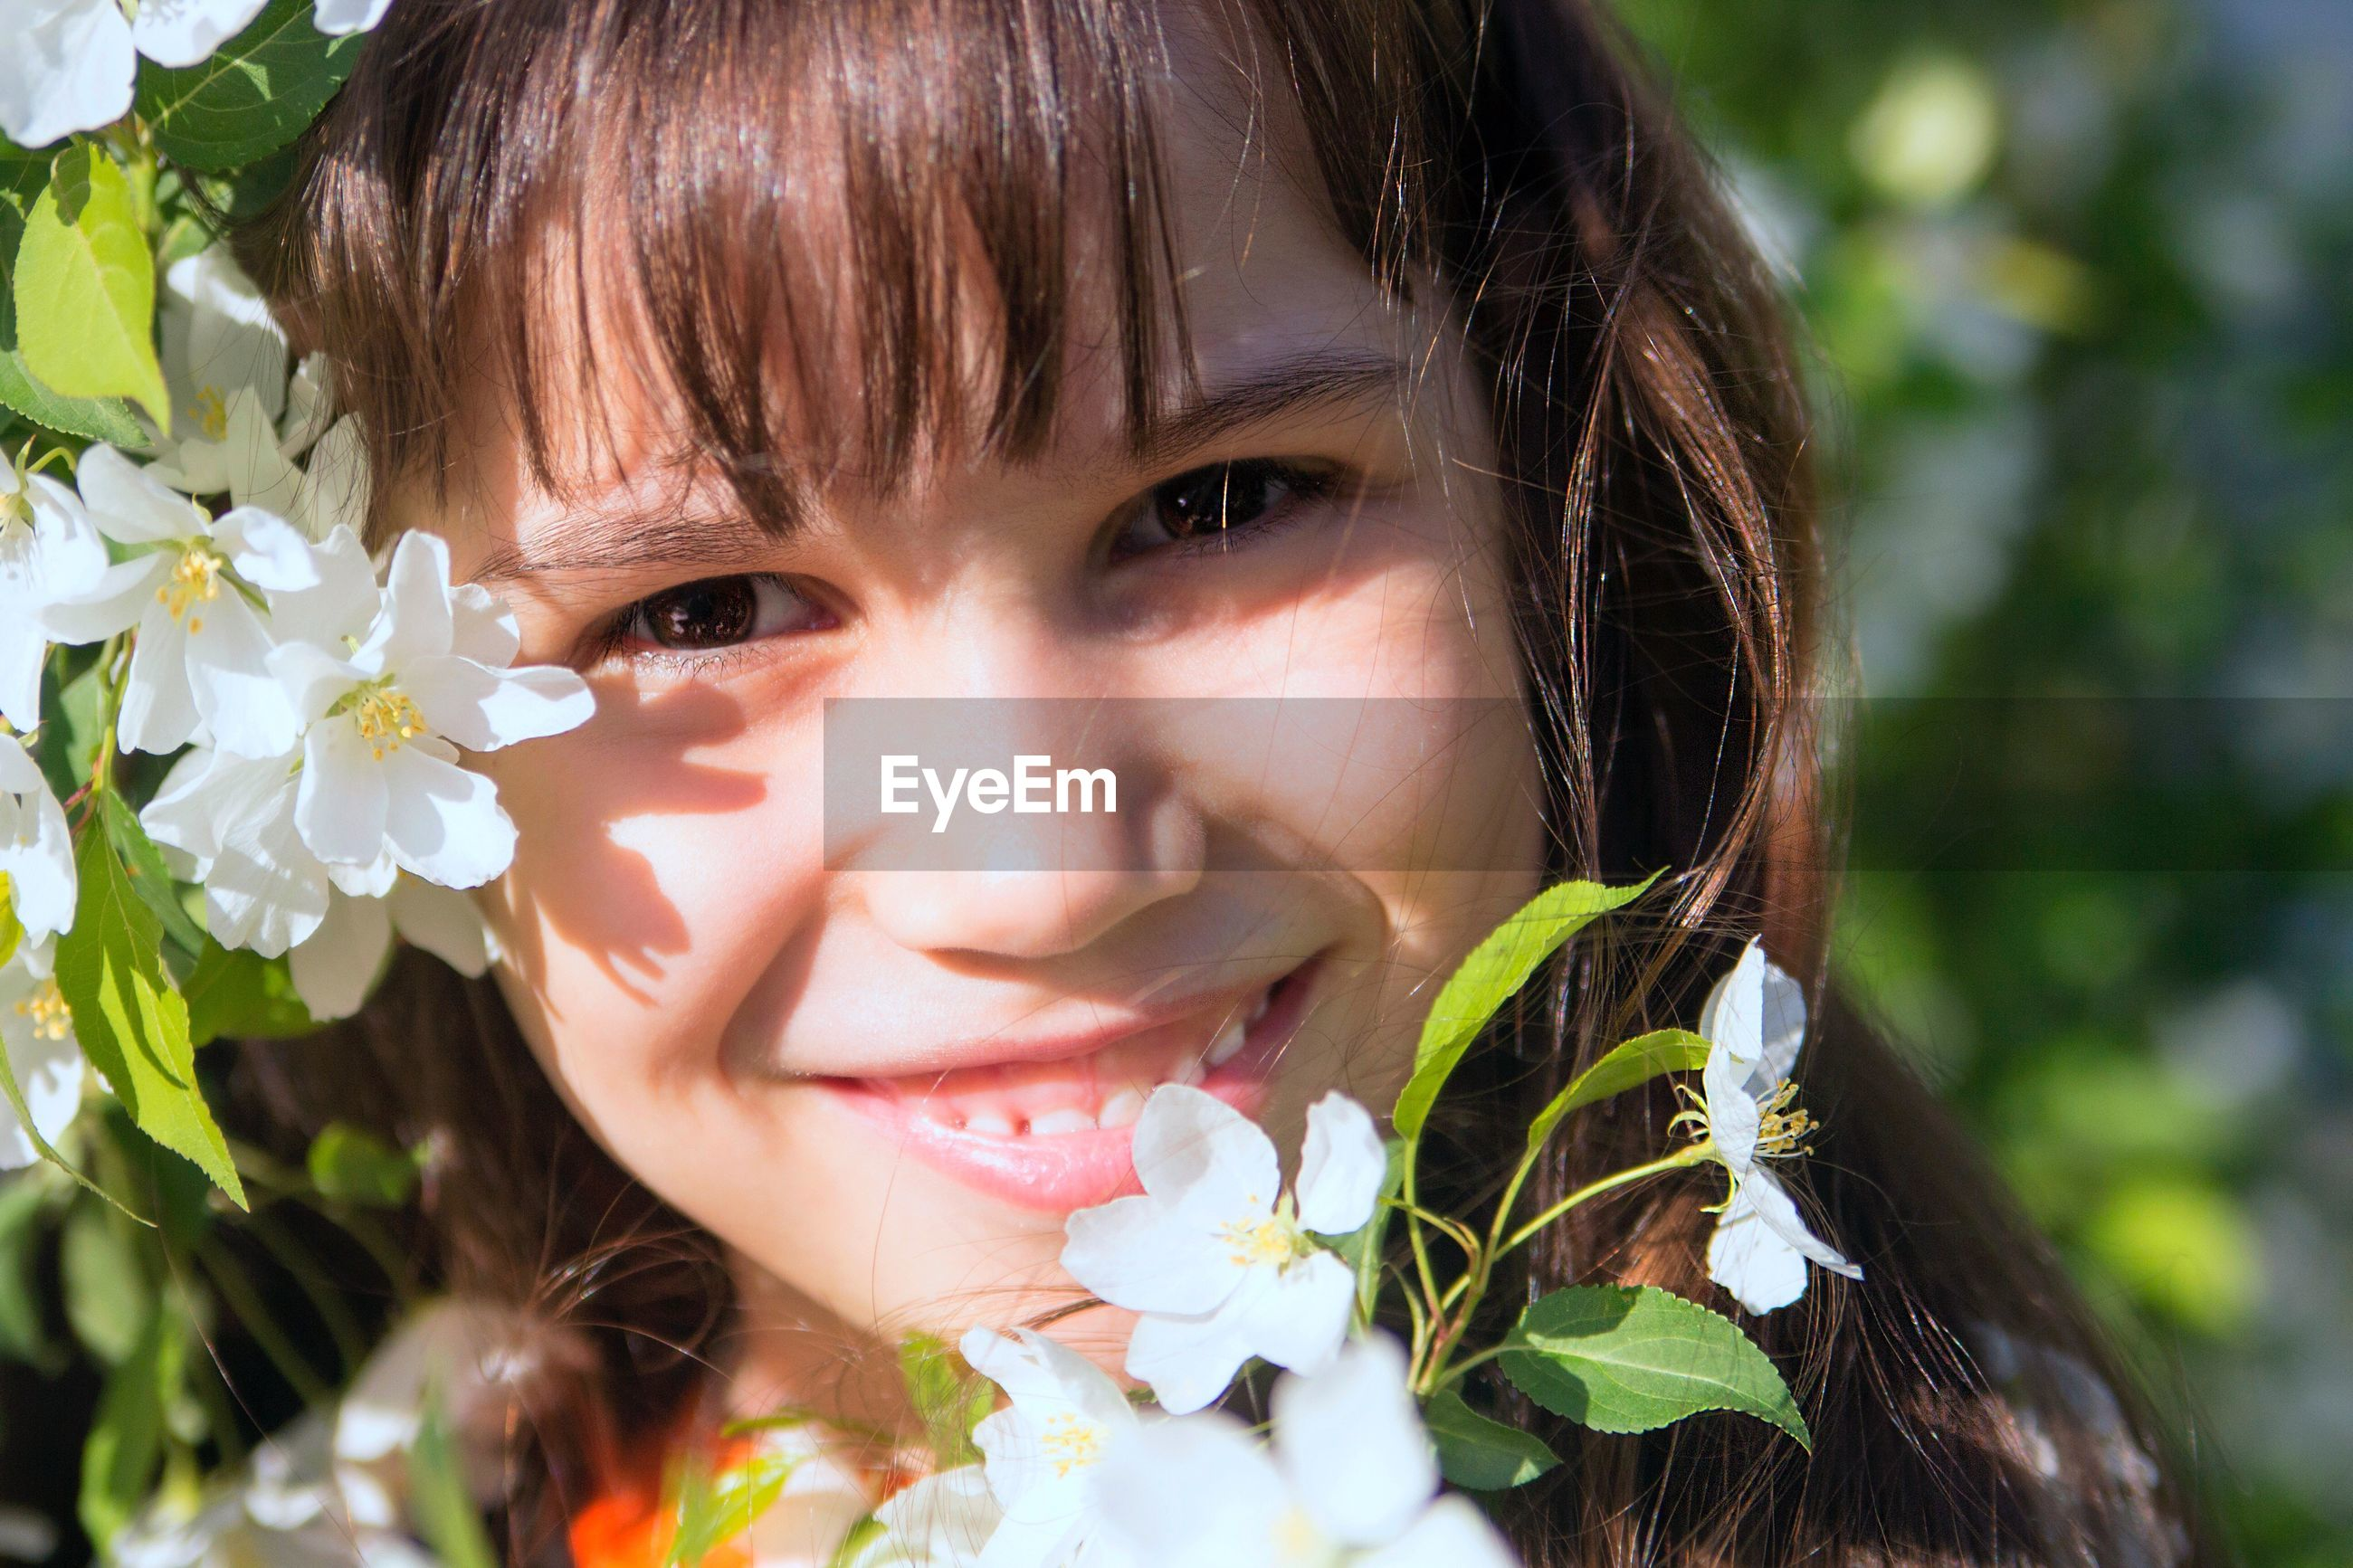 Close-up portrait of cute girl by white flowers blooming outdoors